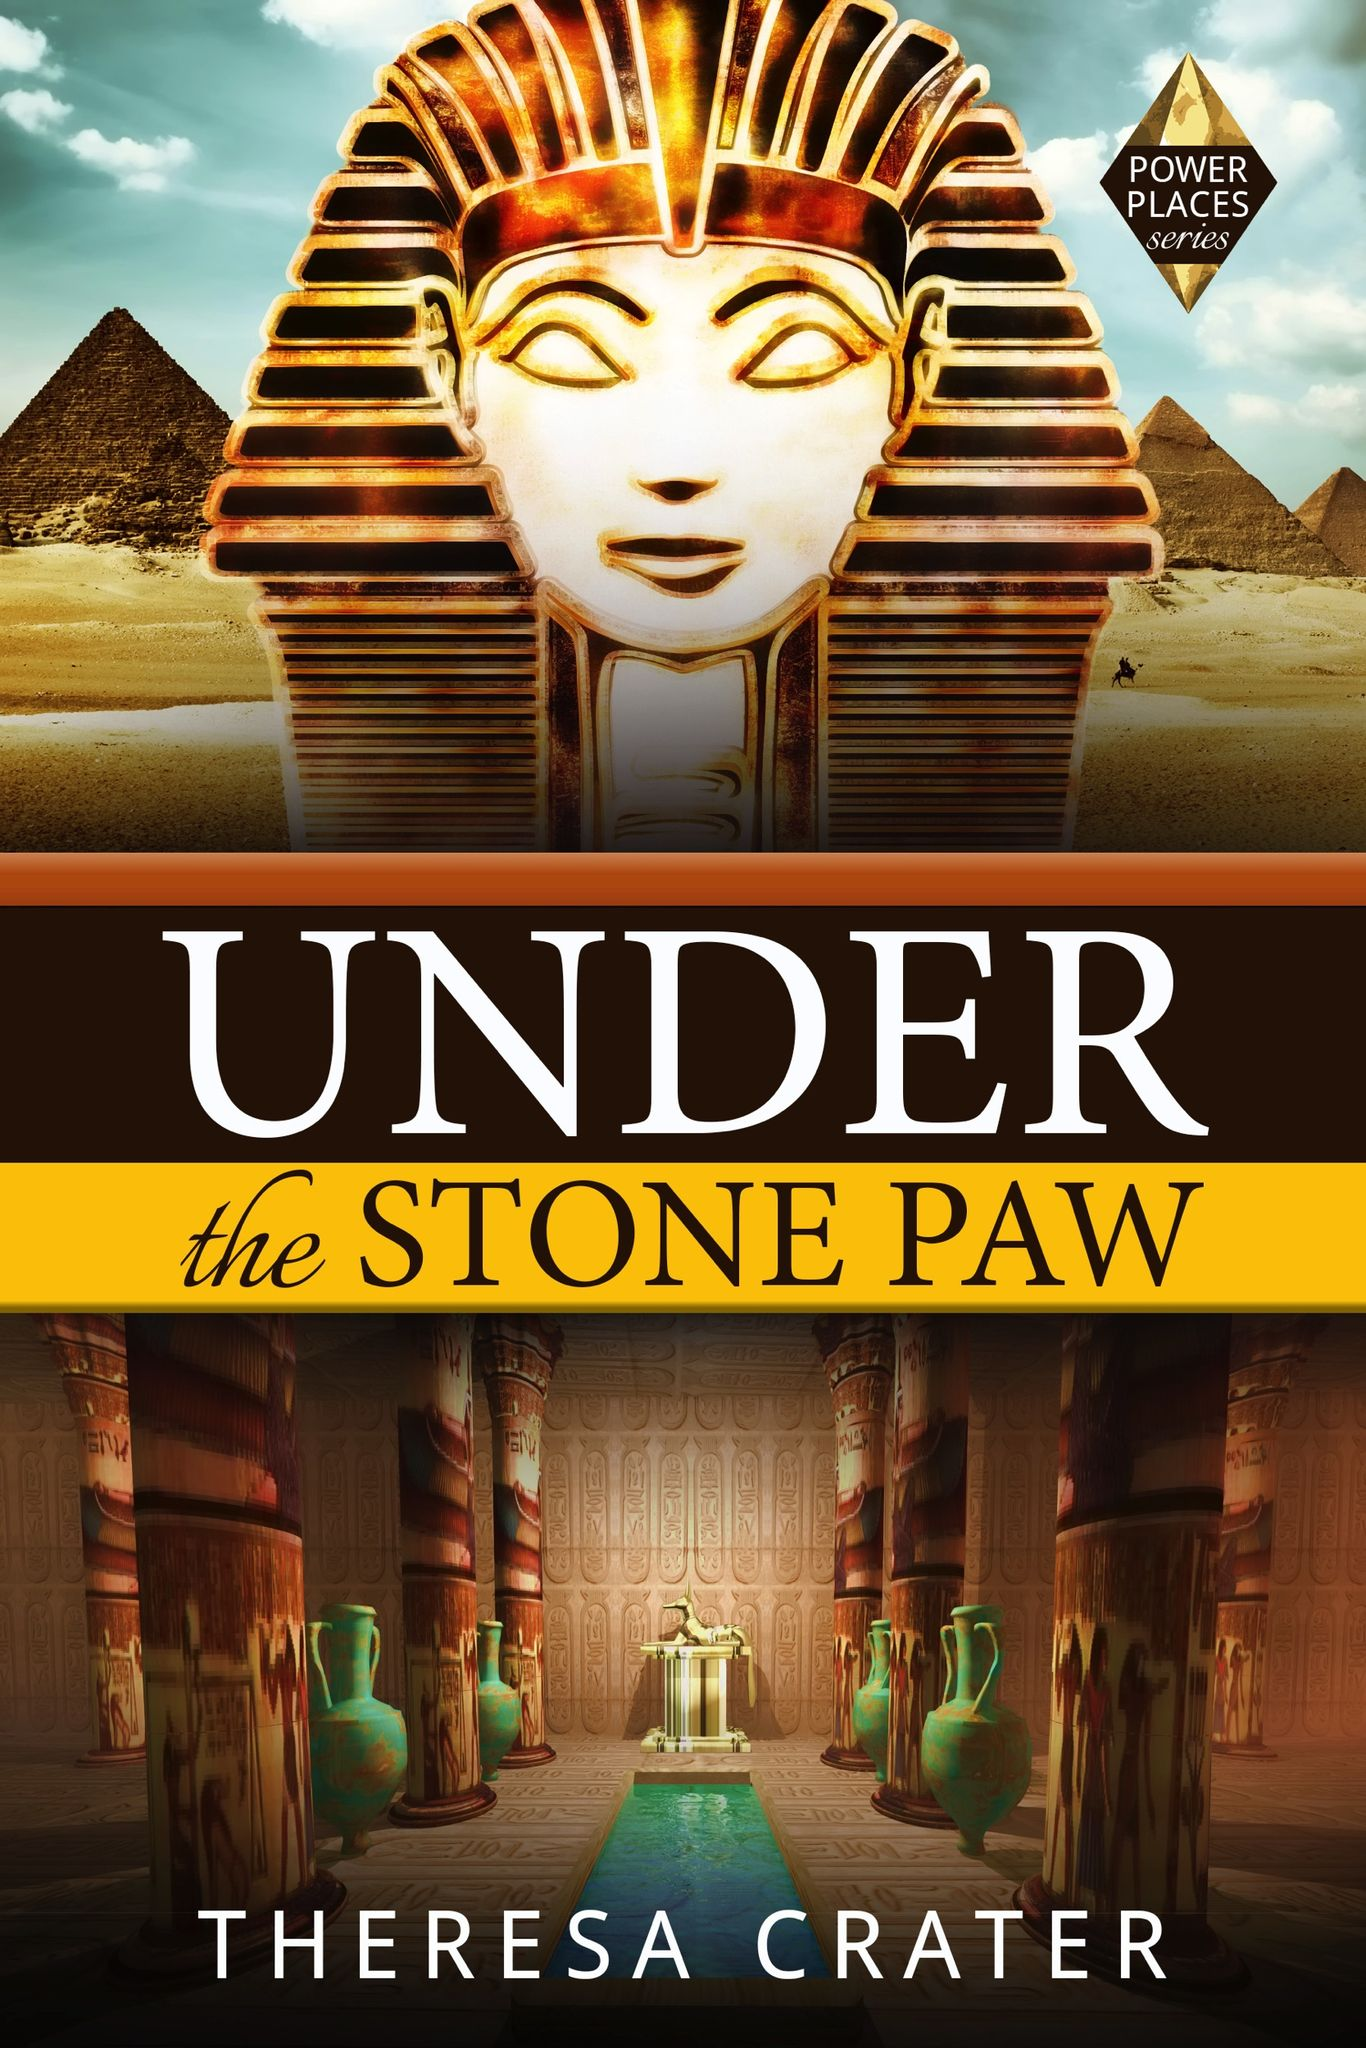 Under the Stone Paw